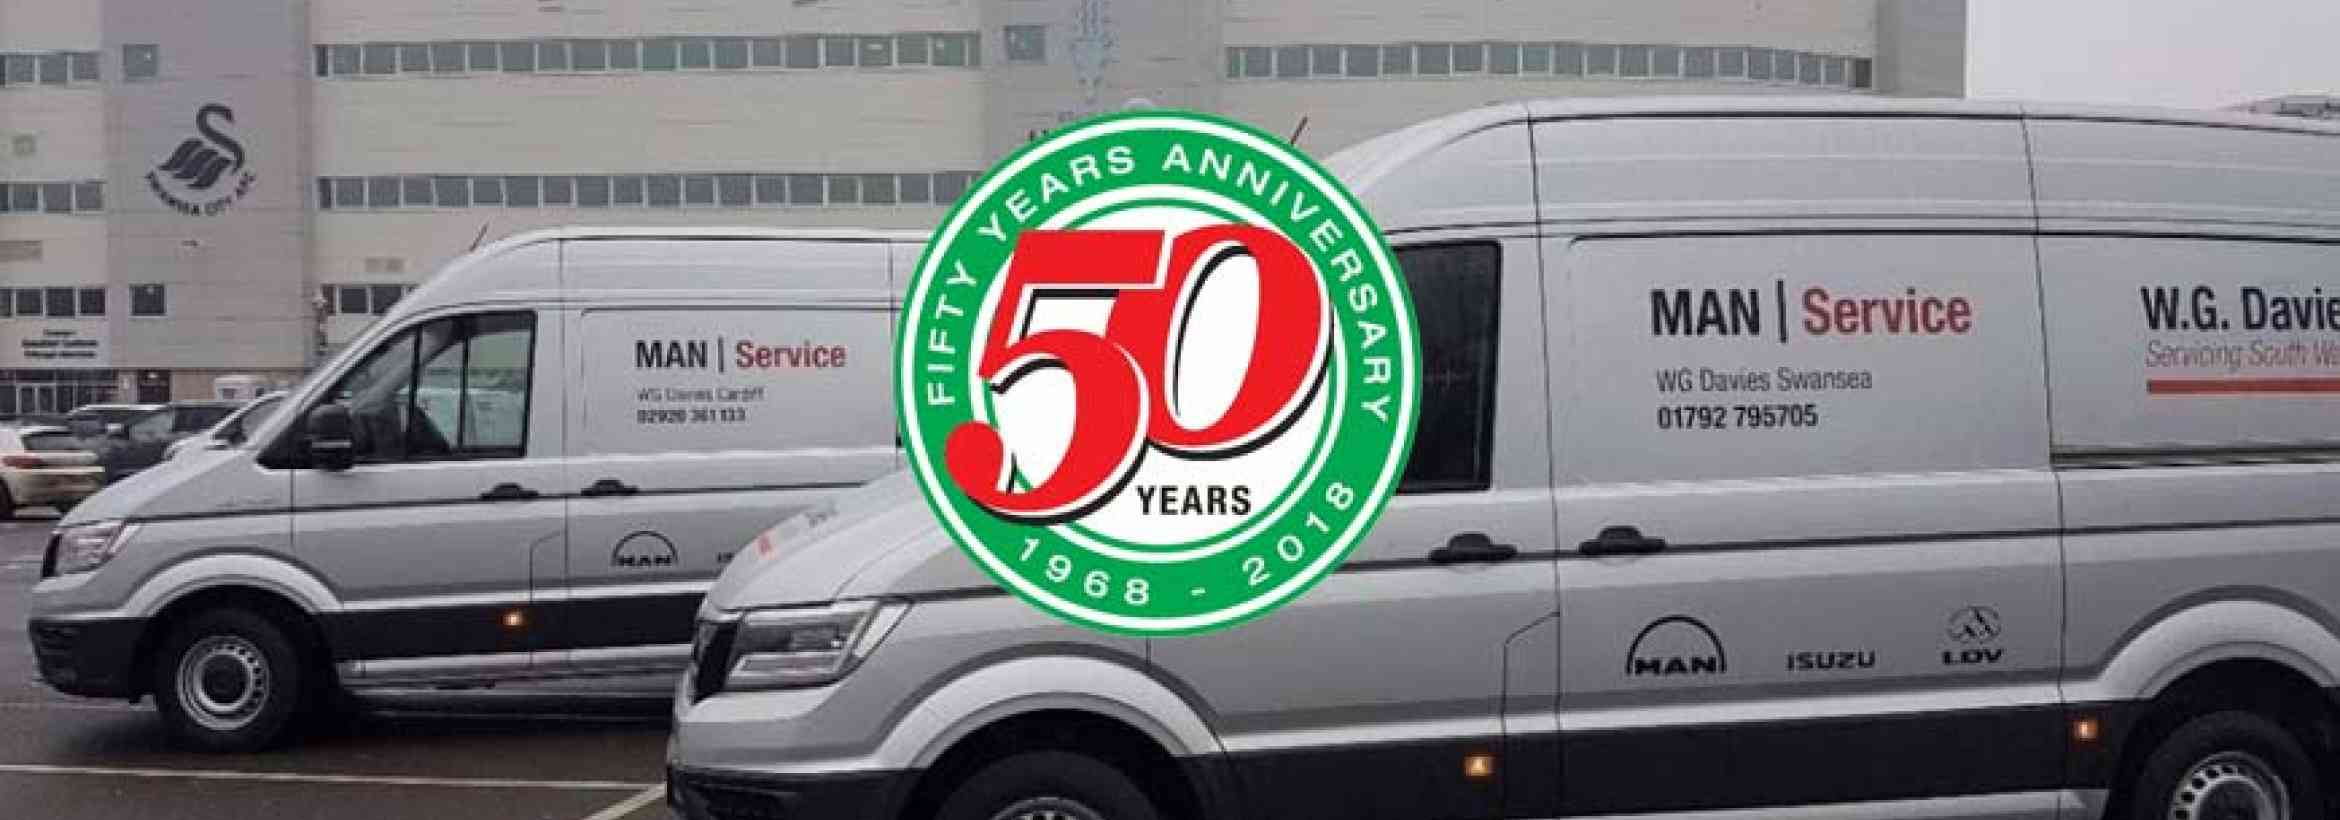 Celebrating 50 Years of On-Going Success